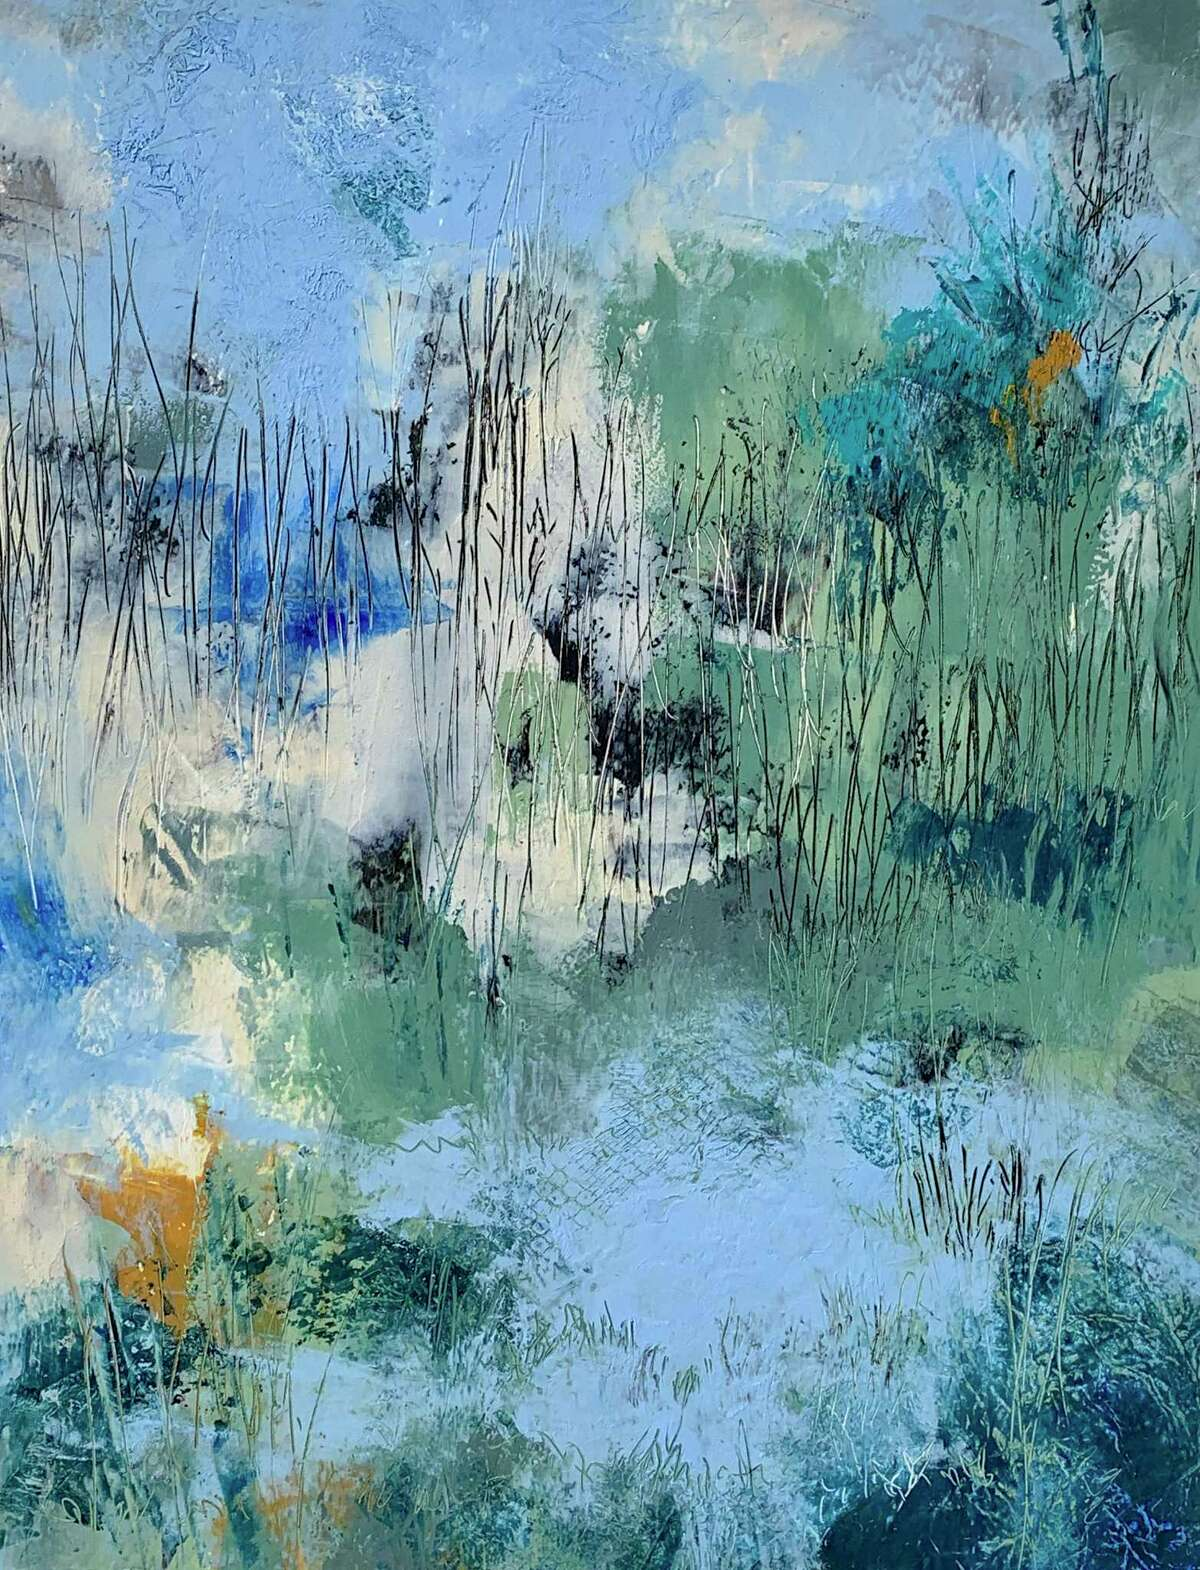 At Spectrum Art Gallery and Artisans Store's newest exhibit, Abstracting Nature, experience both impressionistic and abstract work in this seven-week show which kicks off Friday, May 14. Above, Once Upon a Marsh, mixed media, oil+cold wax, Kathleen DeMeo.